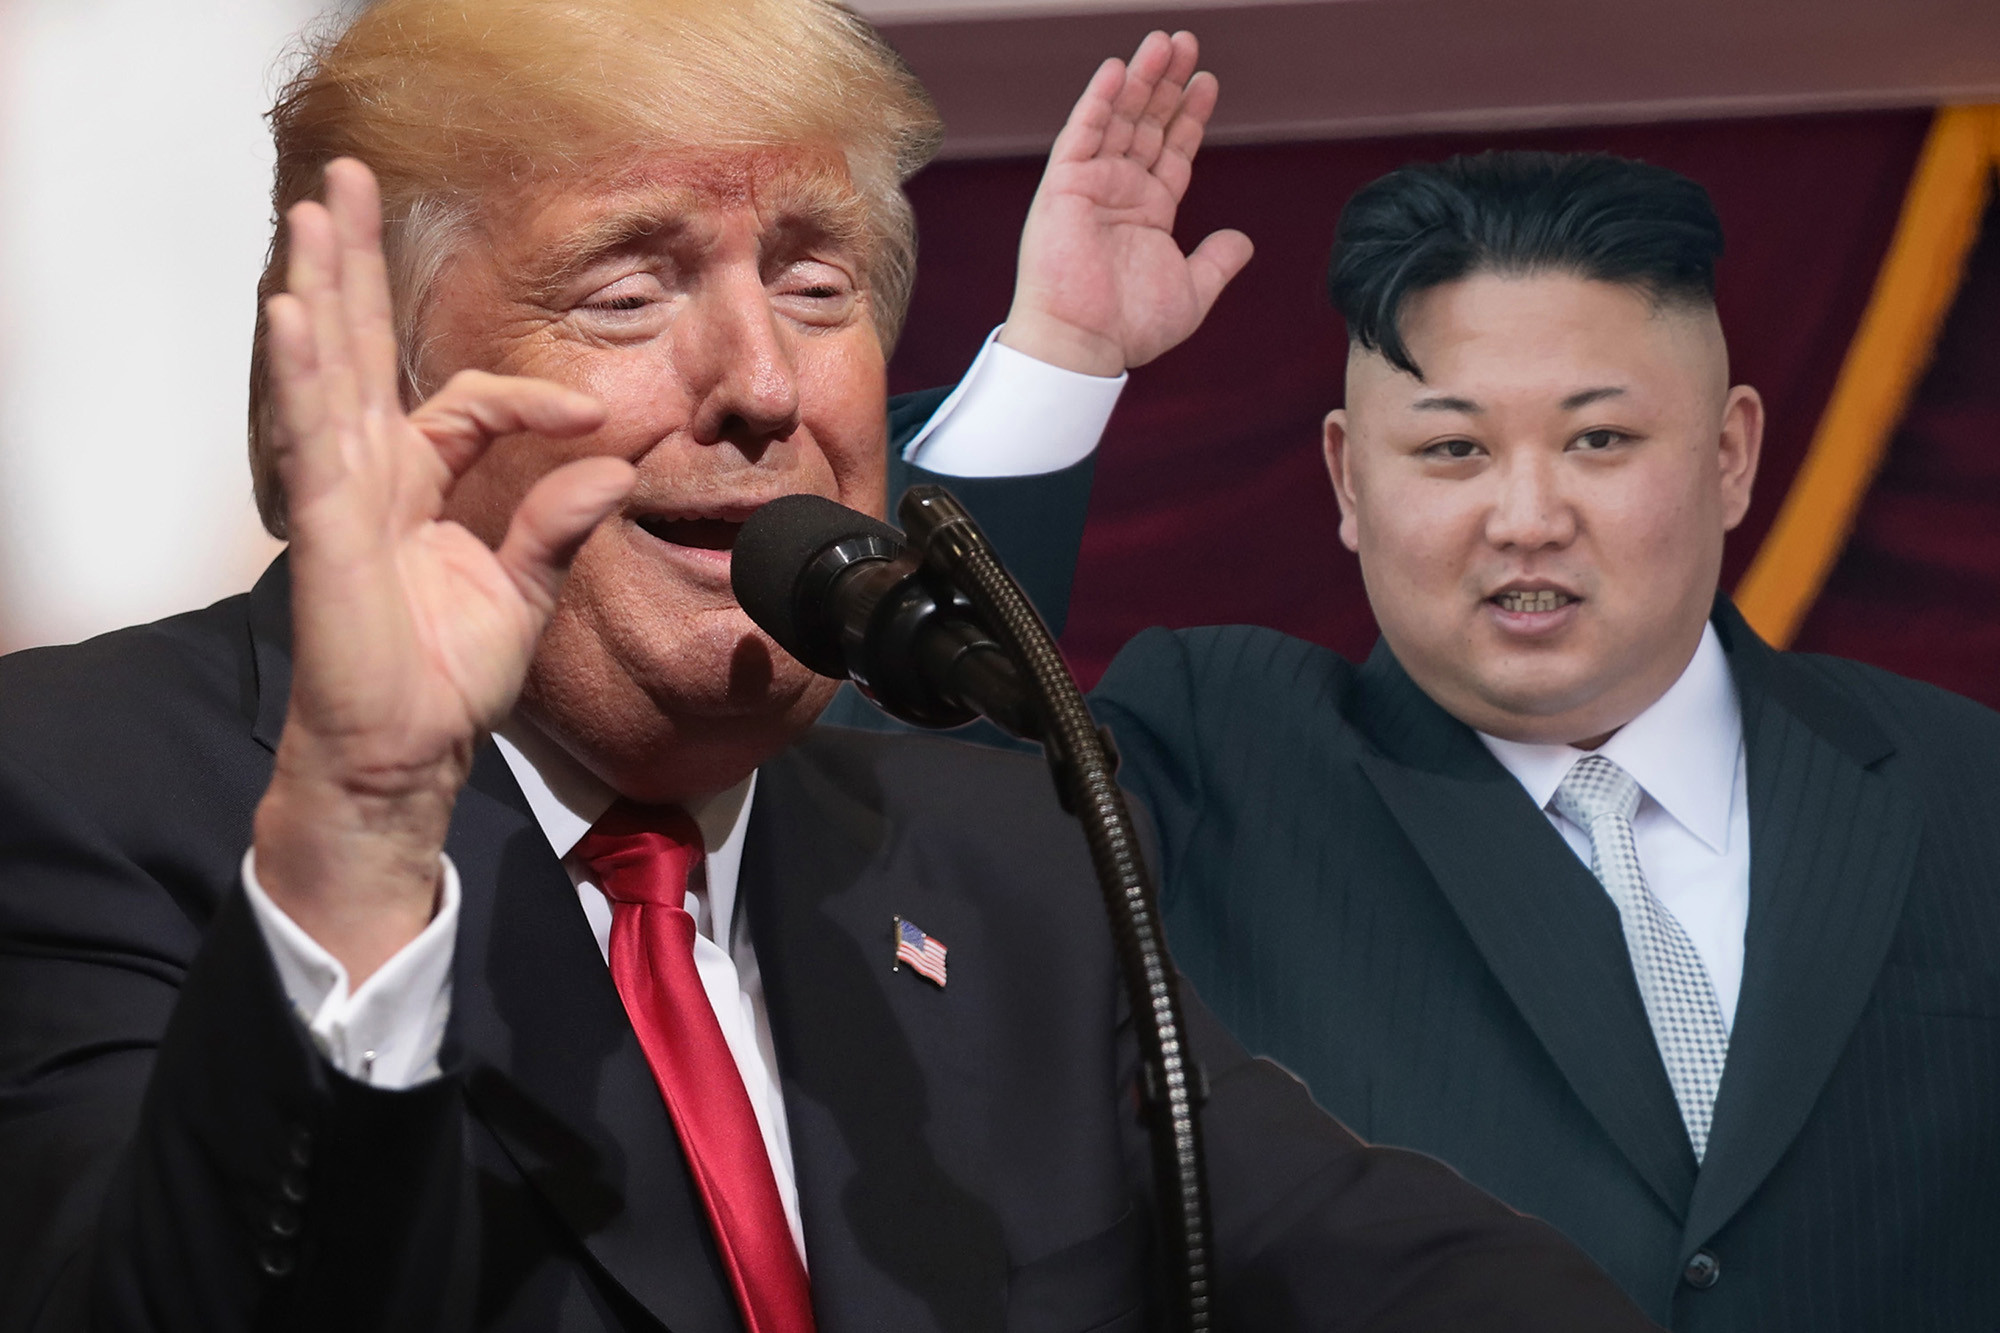 North Korea: Why dealing with Kim Jong-un is like managing a psychopathic boss